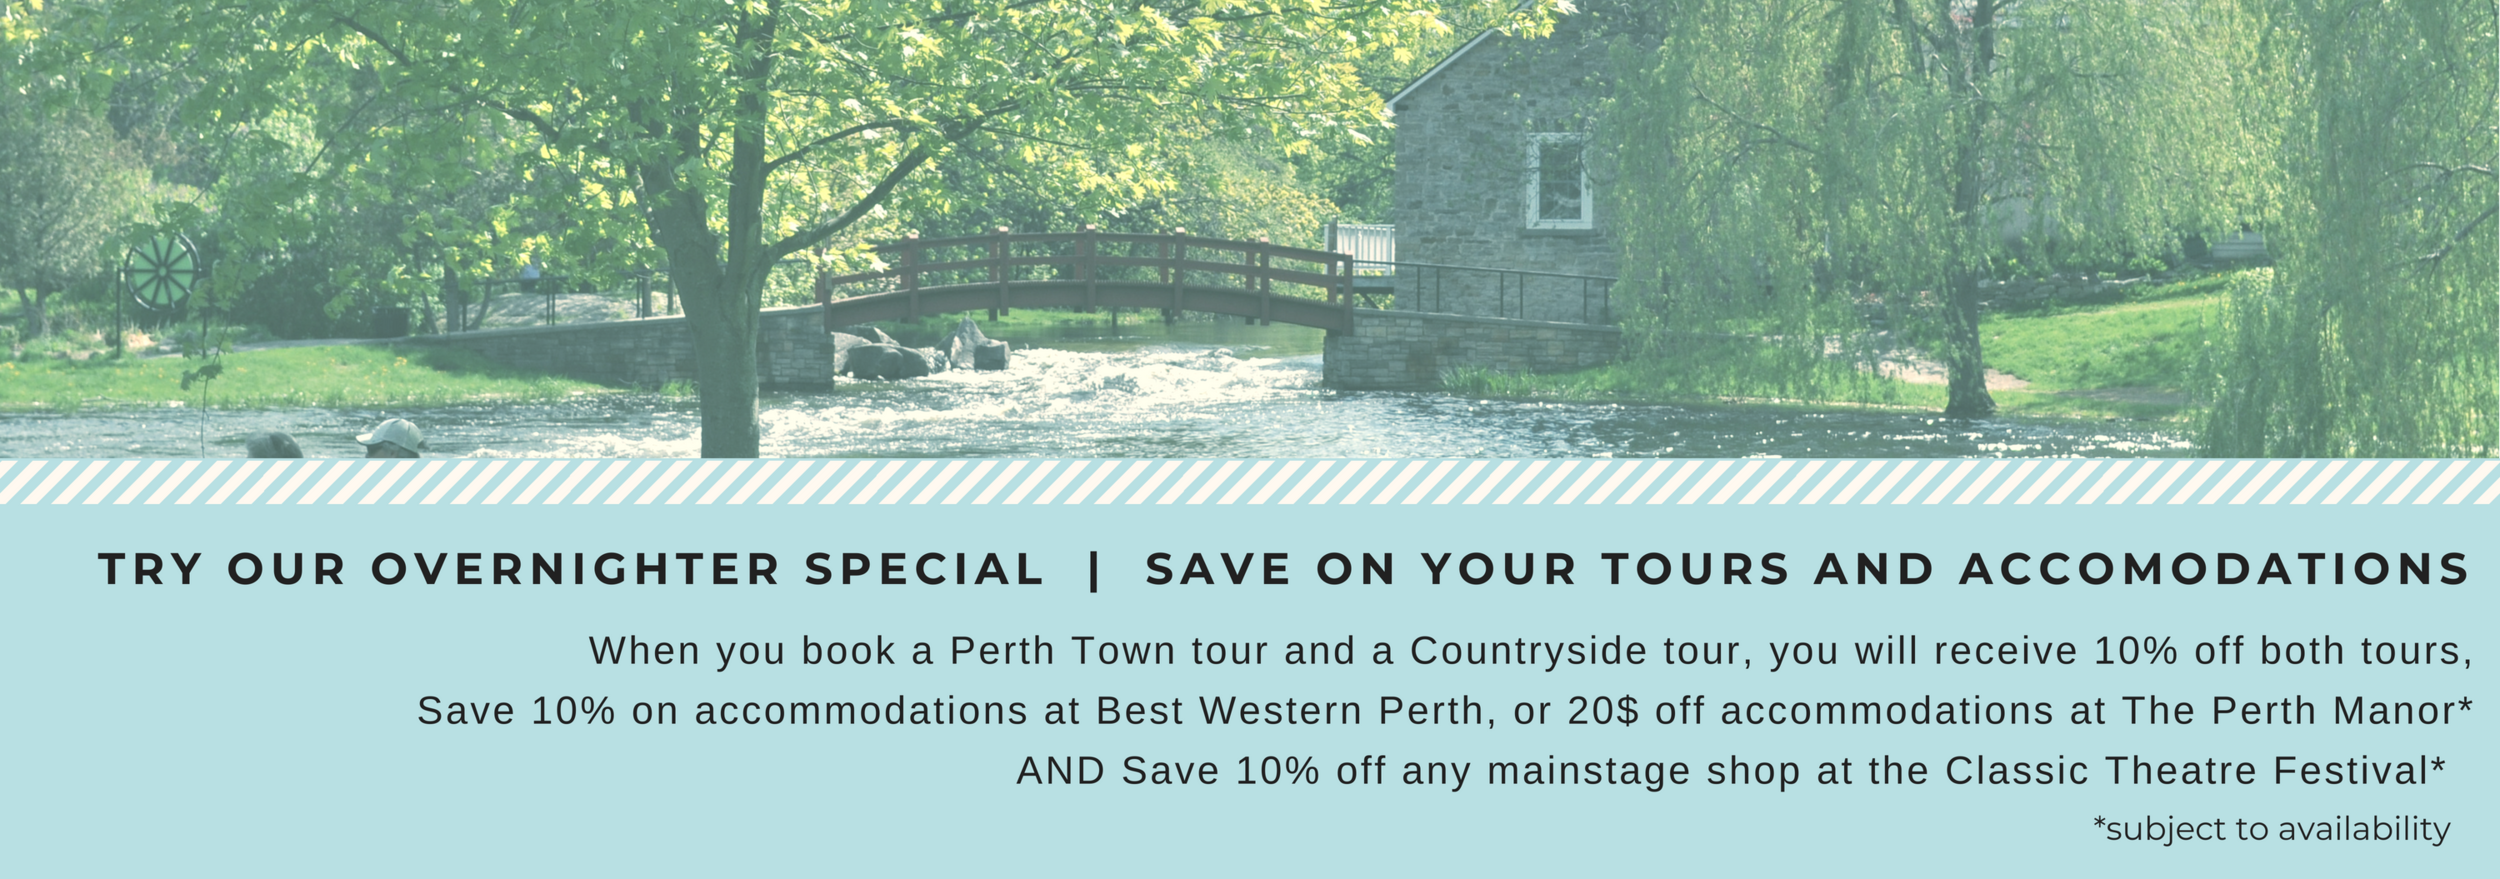 To Apply: Book your 2 tours and present the receipt to either  Best Western Perth or  Perth Manor and  Classic Theatre Festival  to receive your discount. (we suggest checking for availability prior to booking)